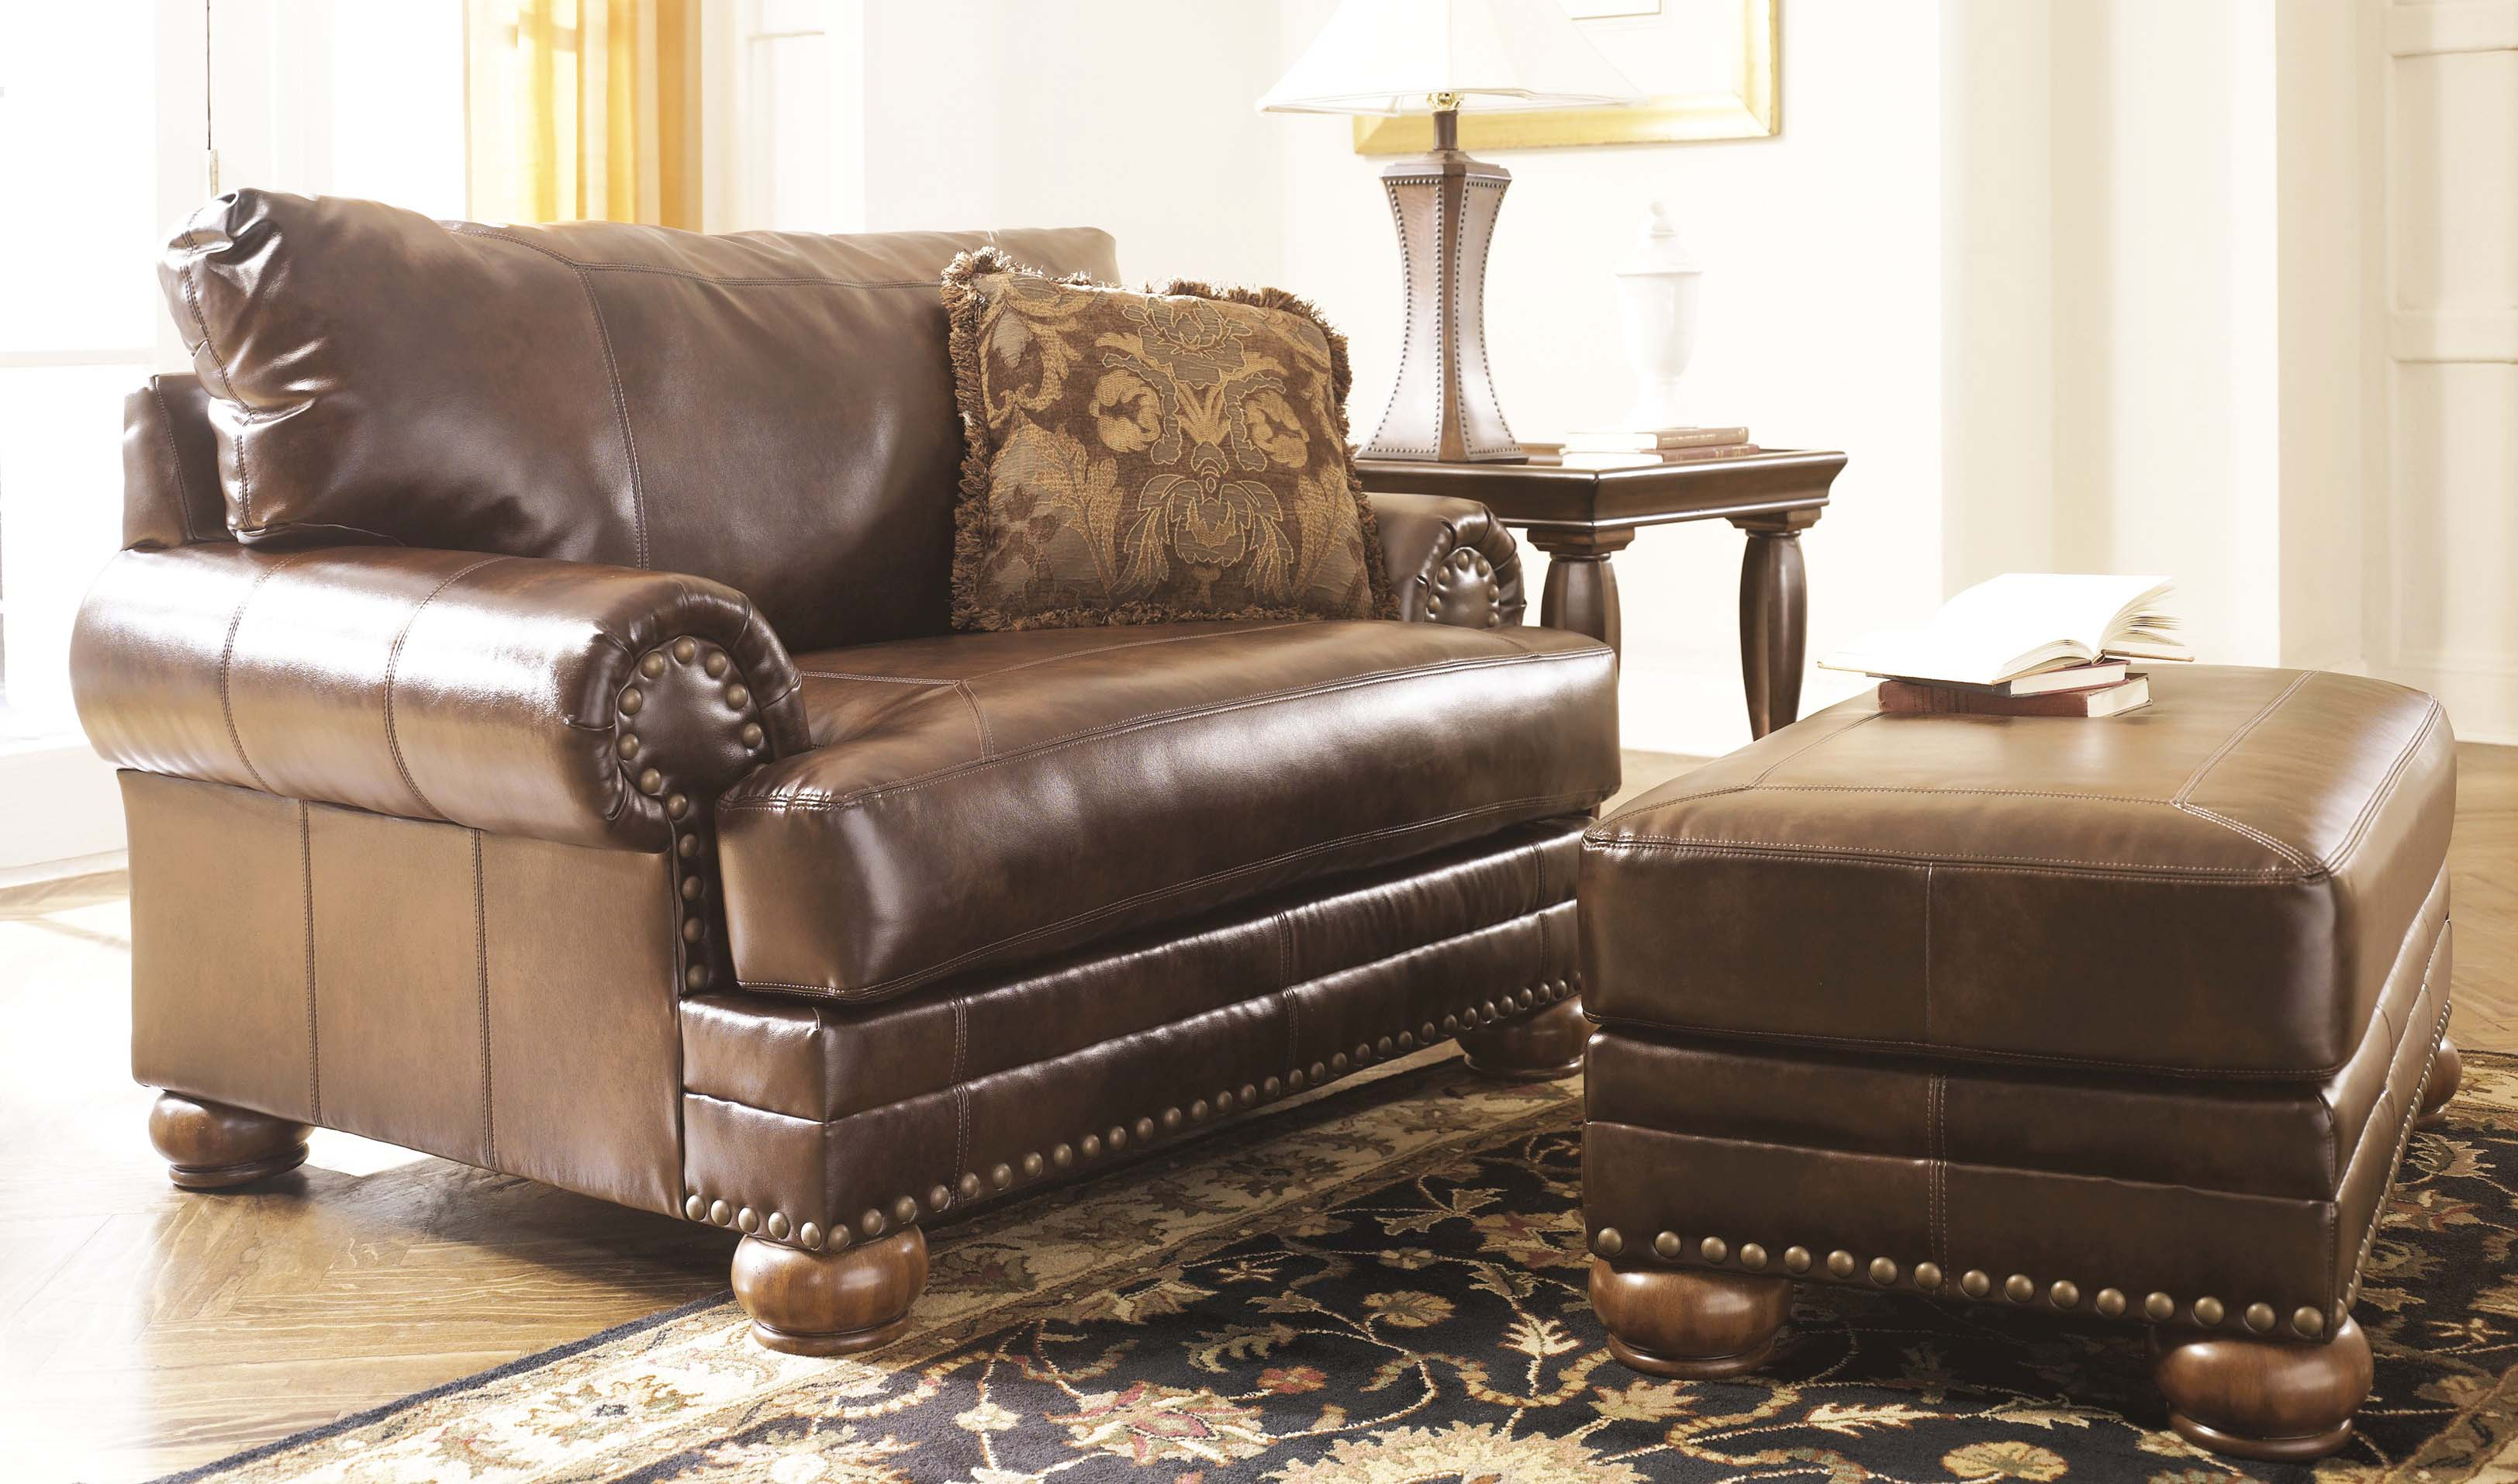 Living Room Ottoman How To Decorate Living Room With Leather Chair Ottoman